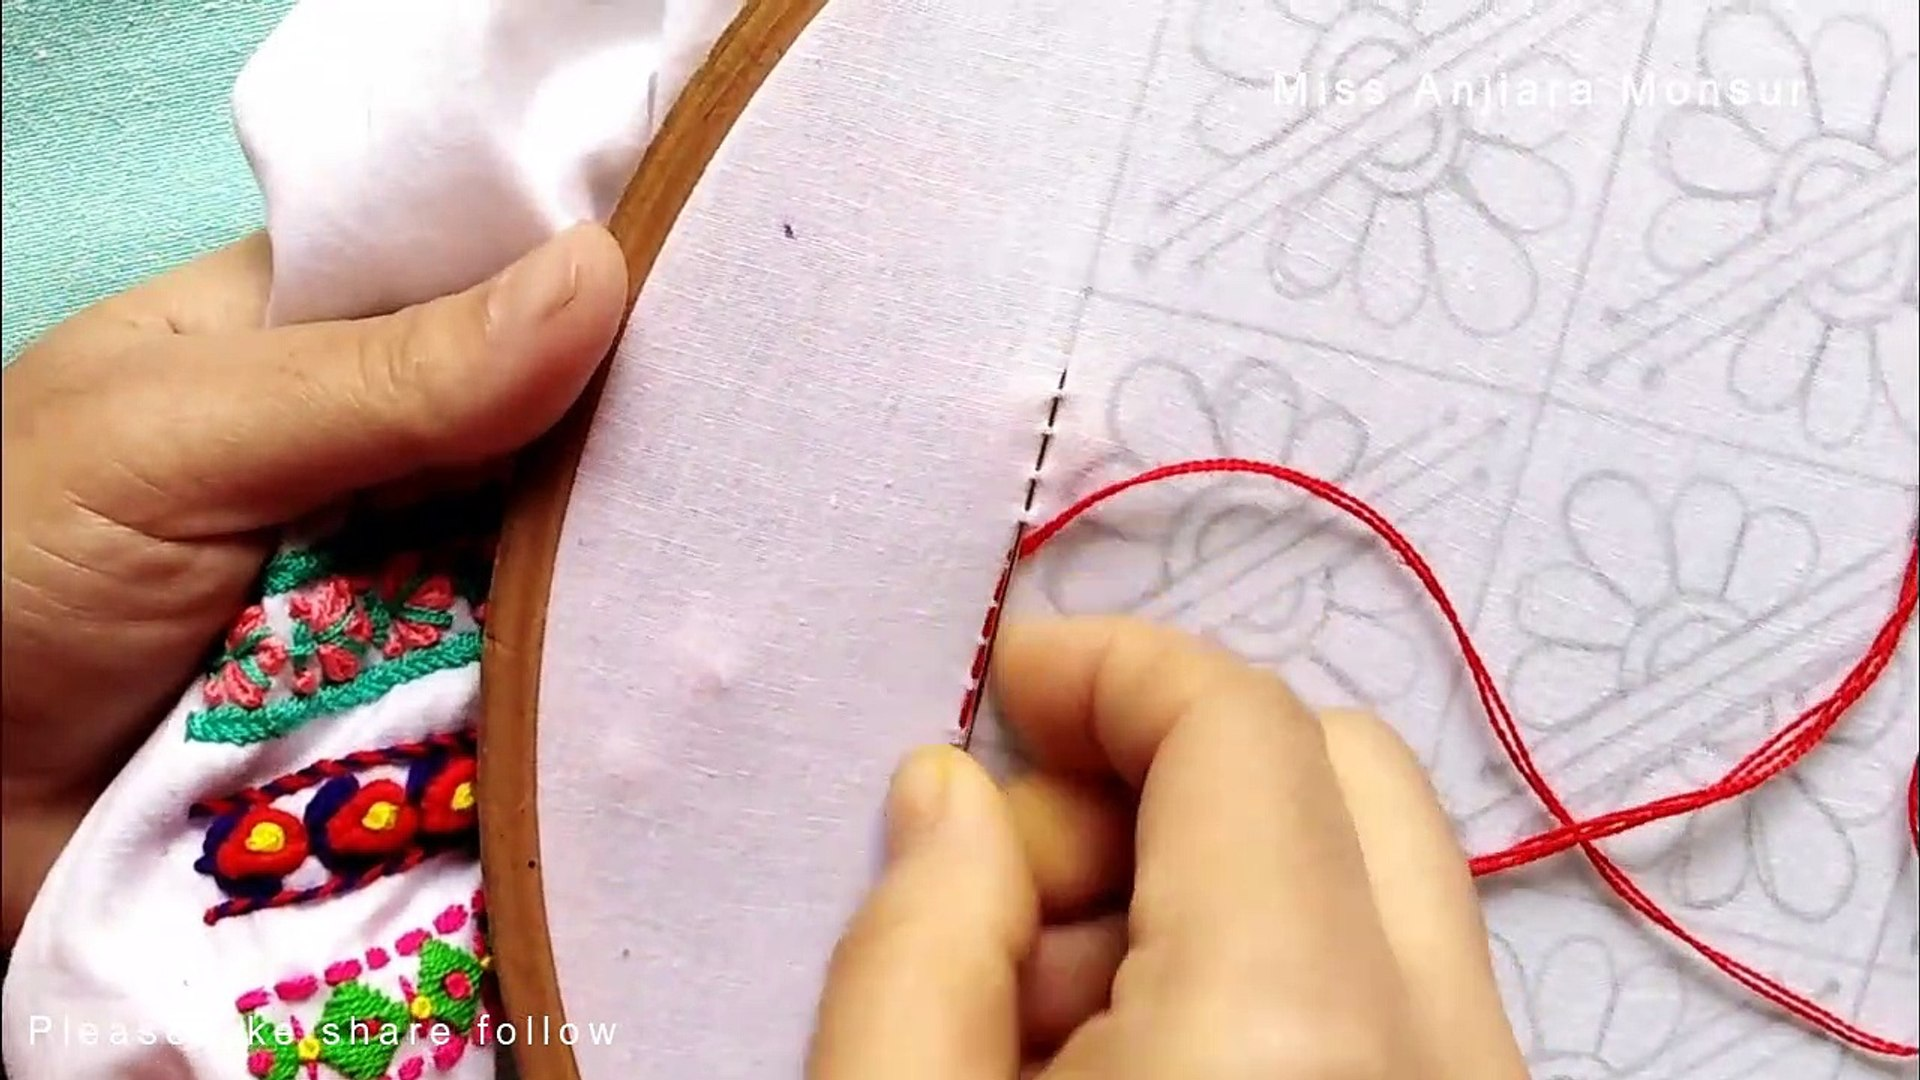 Beautiful Hand Embroidery 2020, Easy and Step by Step Embroidery,التطريز اليدوي الجميل 2020,সুন্দর হ